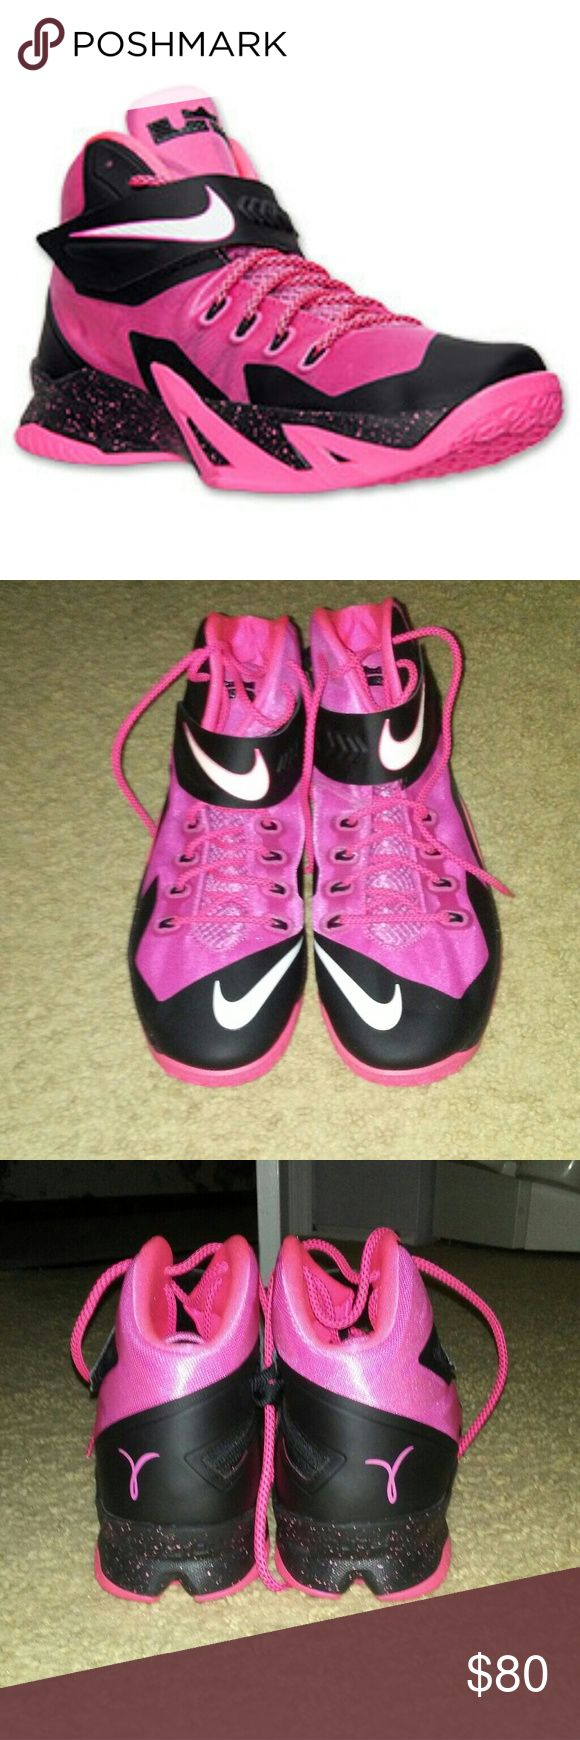 🎁NWOT- Nike Zoom LeBron Soldier 8🎁 Pink & black LeBron basketball shoes, brand new, no tags no box. These Lebrons were made to bring attention to breast cancer awareness and are mens size 17!!!! Price is definitely negotiable. Nike Zoom Shoes Athletic Shoes